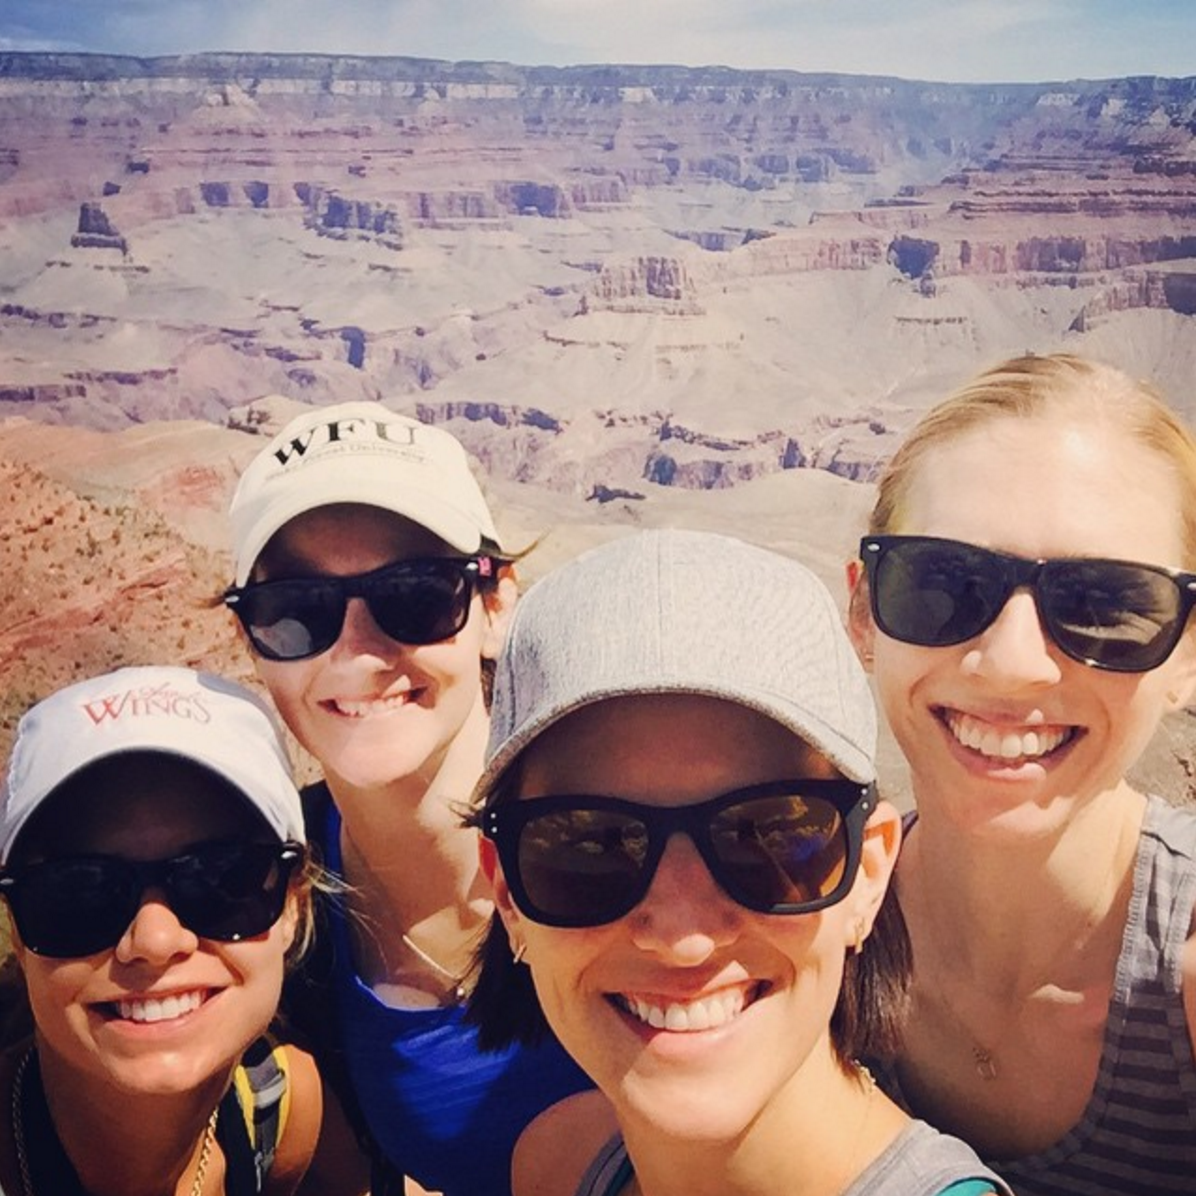 Work hard, play hard! This isn't a career-related post, I was totally reinvigorated after this amazing 30th birthday year trip with my besties from college. We met in Phoenix, rented an RV and drove/hiked into the Grand Canyon and Sedona, and had s'mores every night under the stars-- can't beat that!